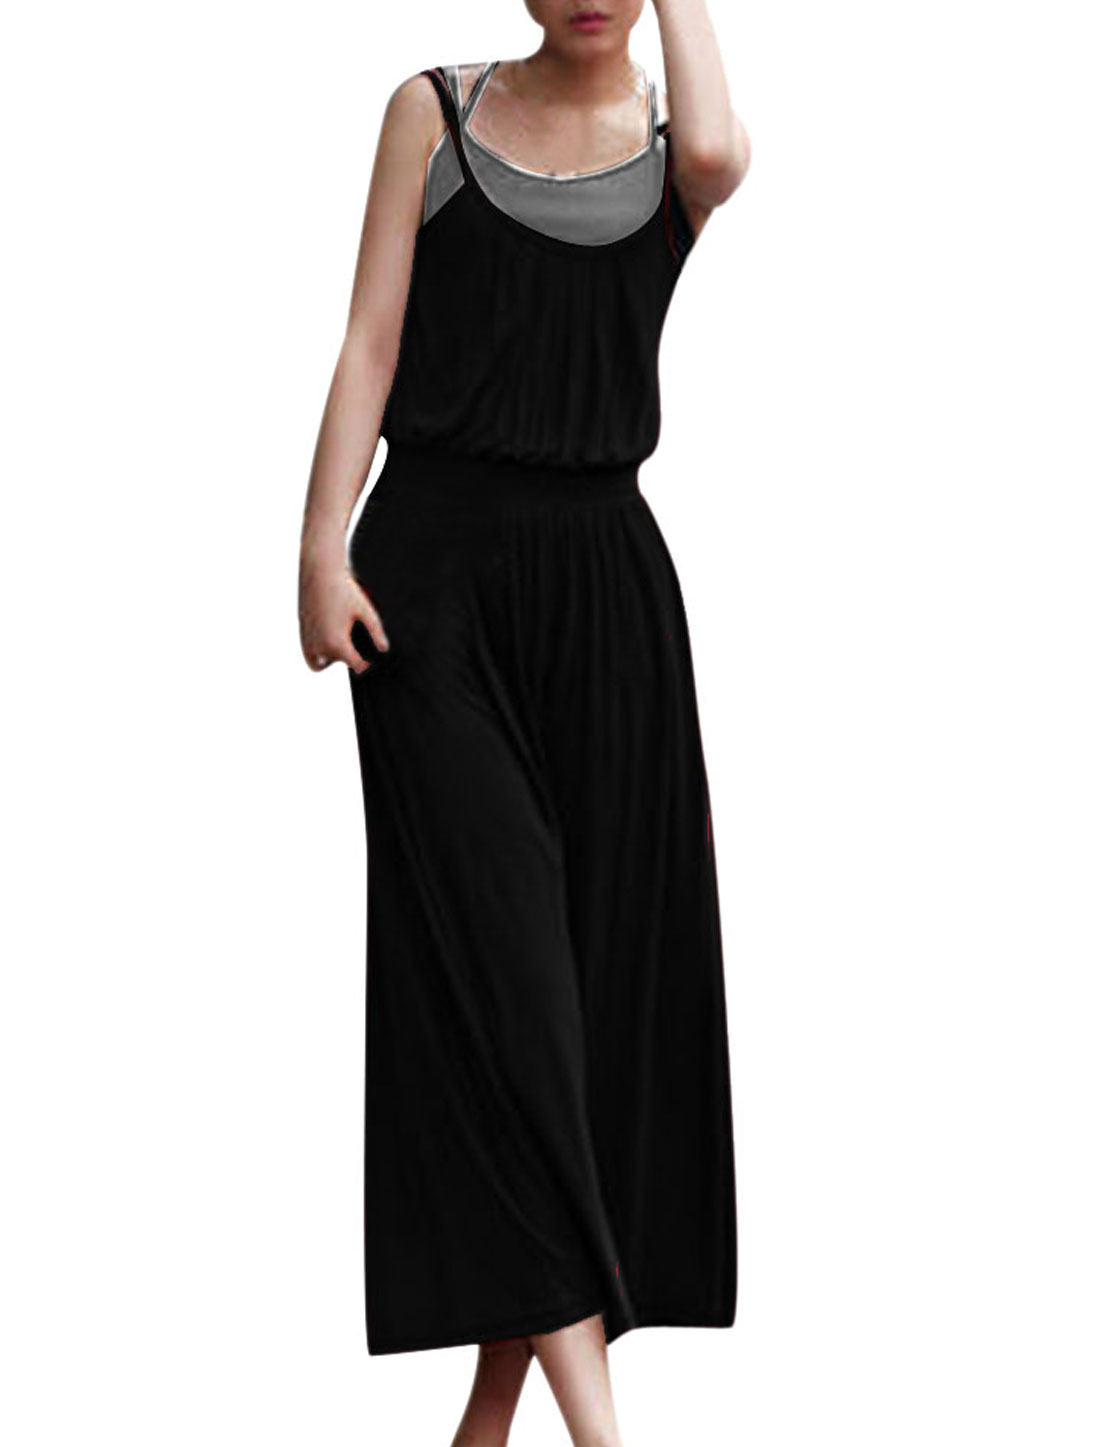 Lady Leisure Sleeveless Elastic Waist Pure Black Mid-calf Long Dress XS